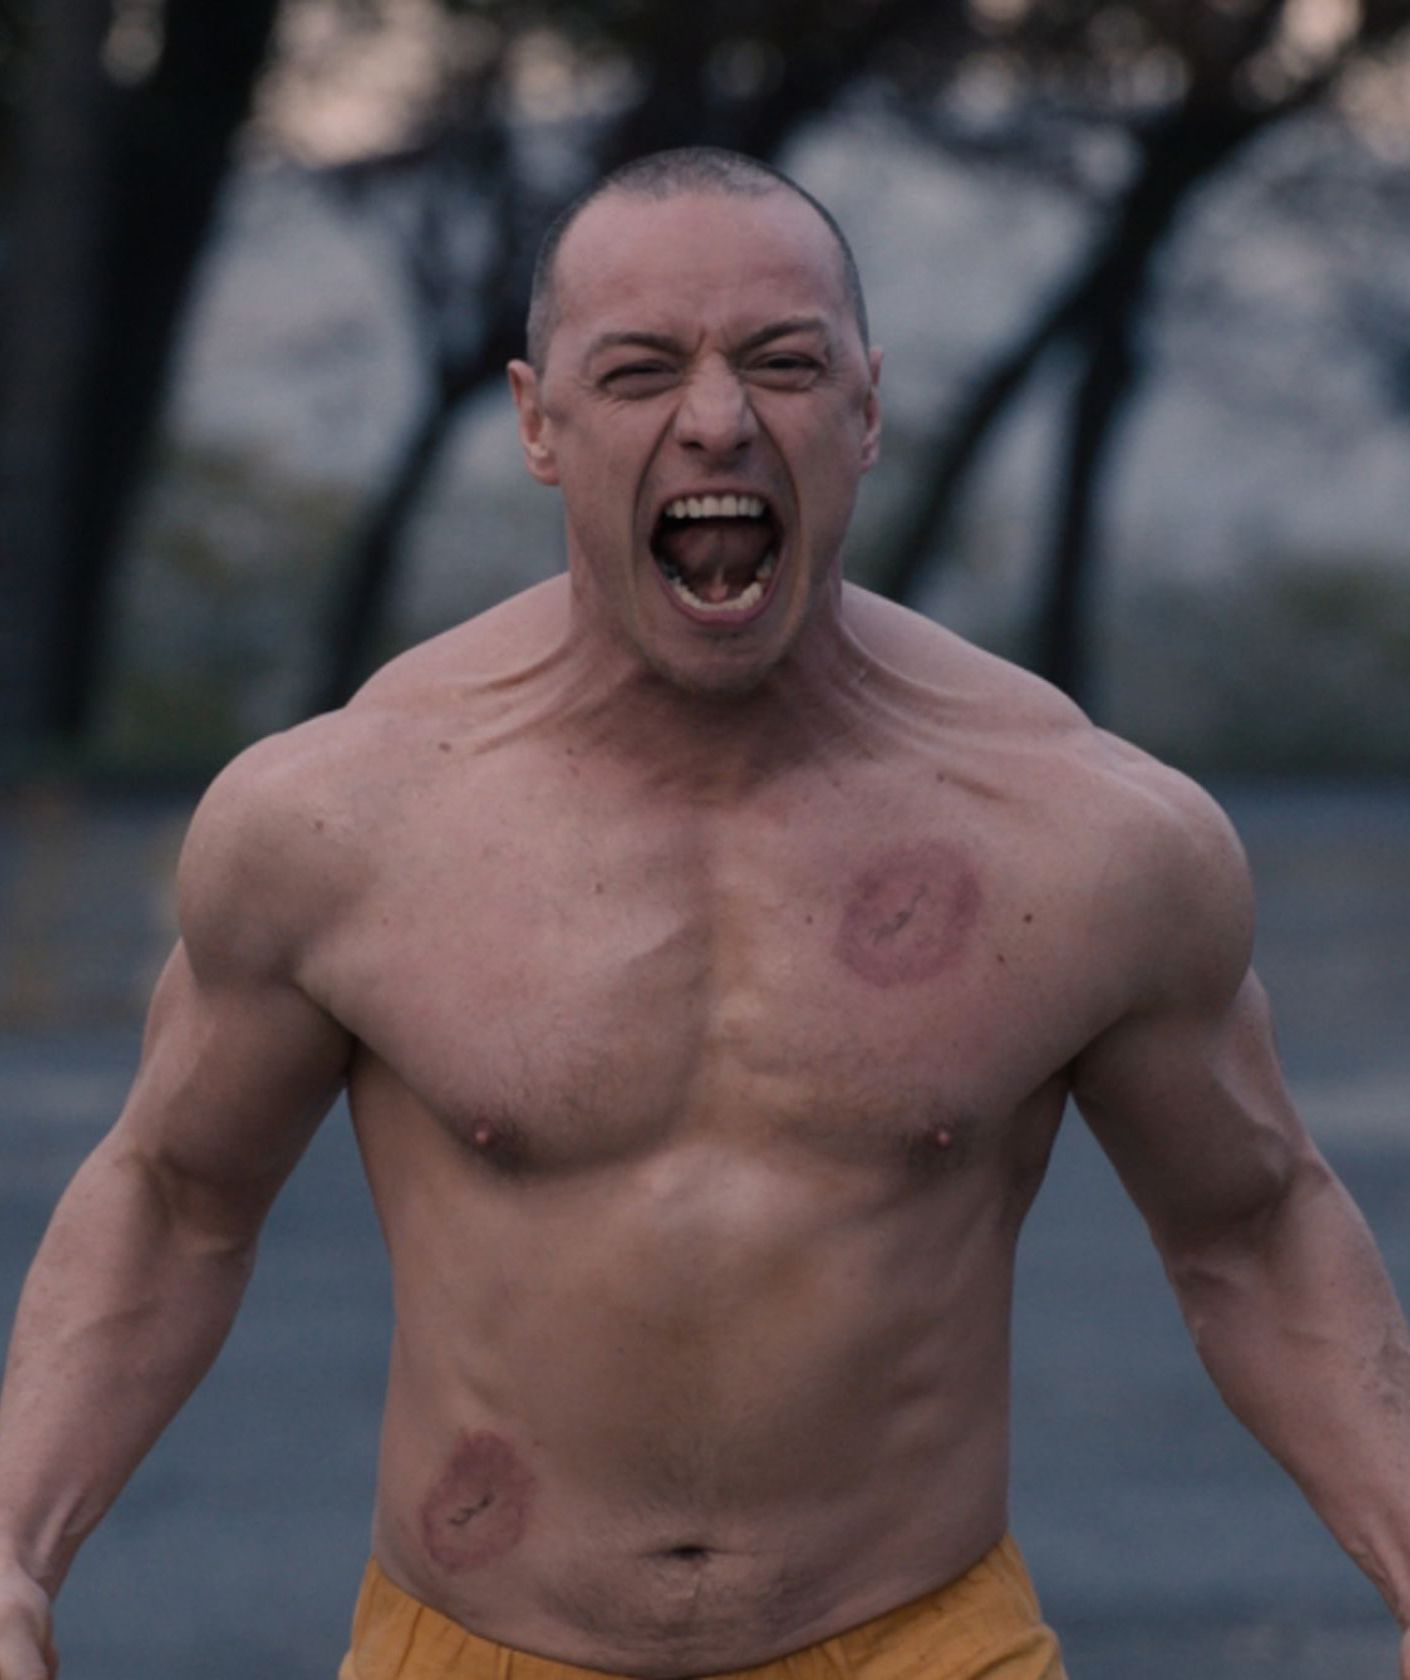 James McAvoy as Kevin Wendell Crumb in Glass